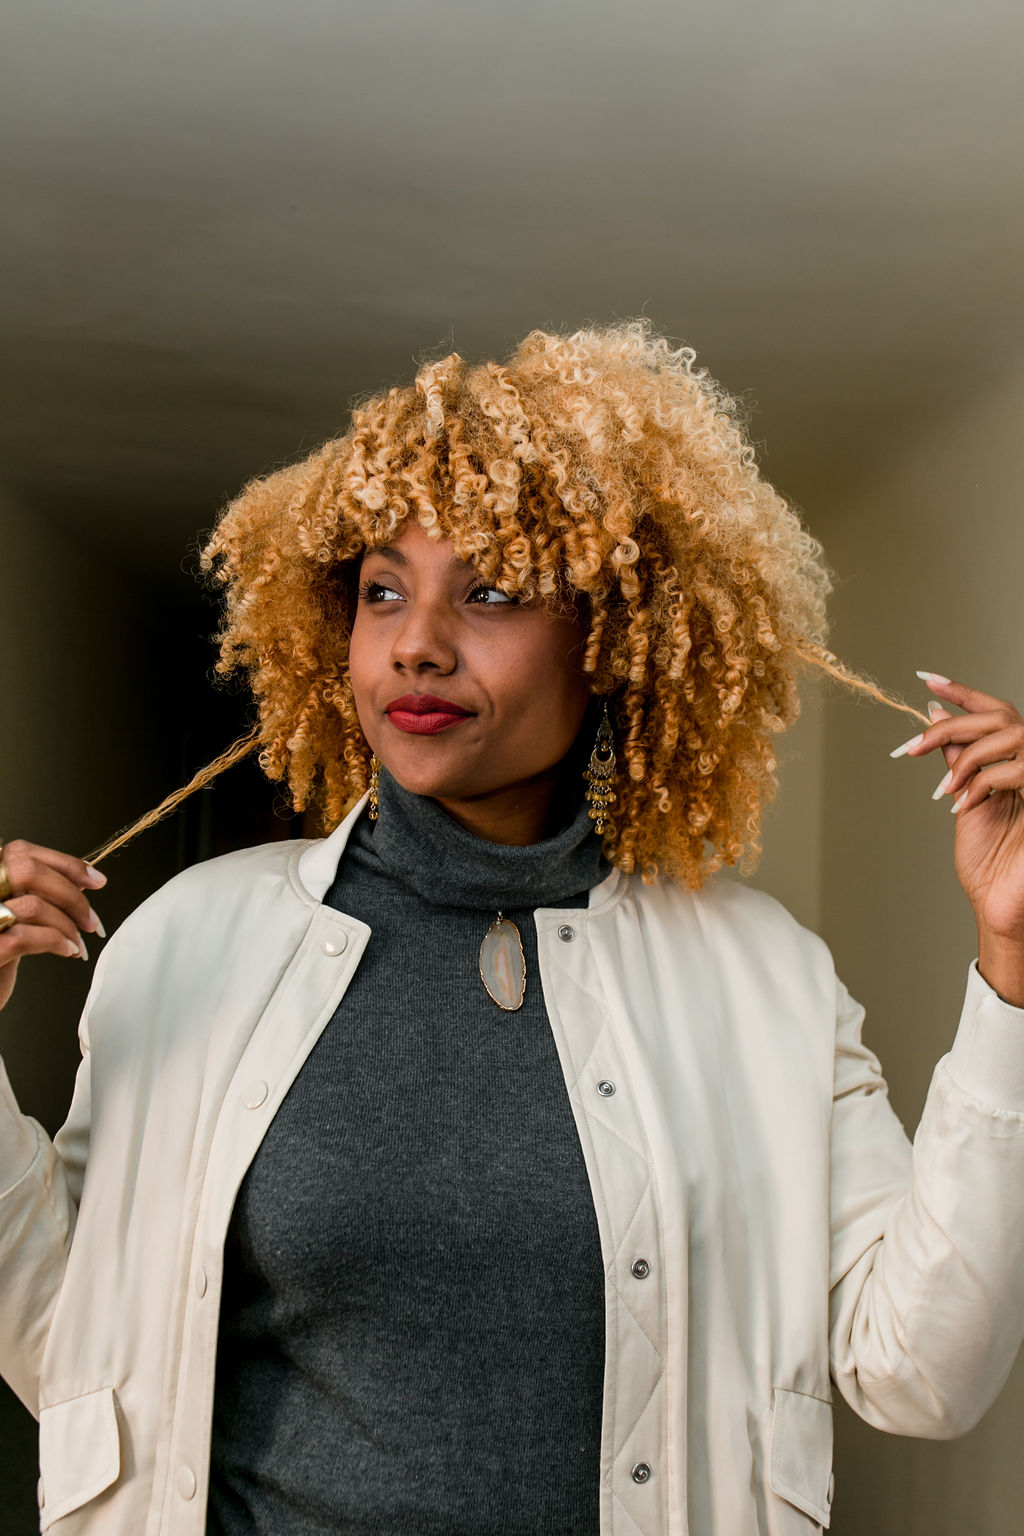 woman with blonde curly hair